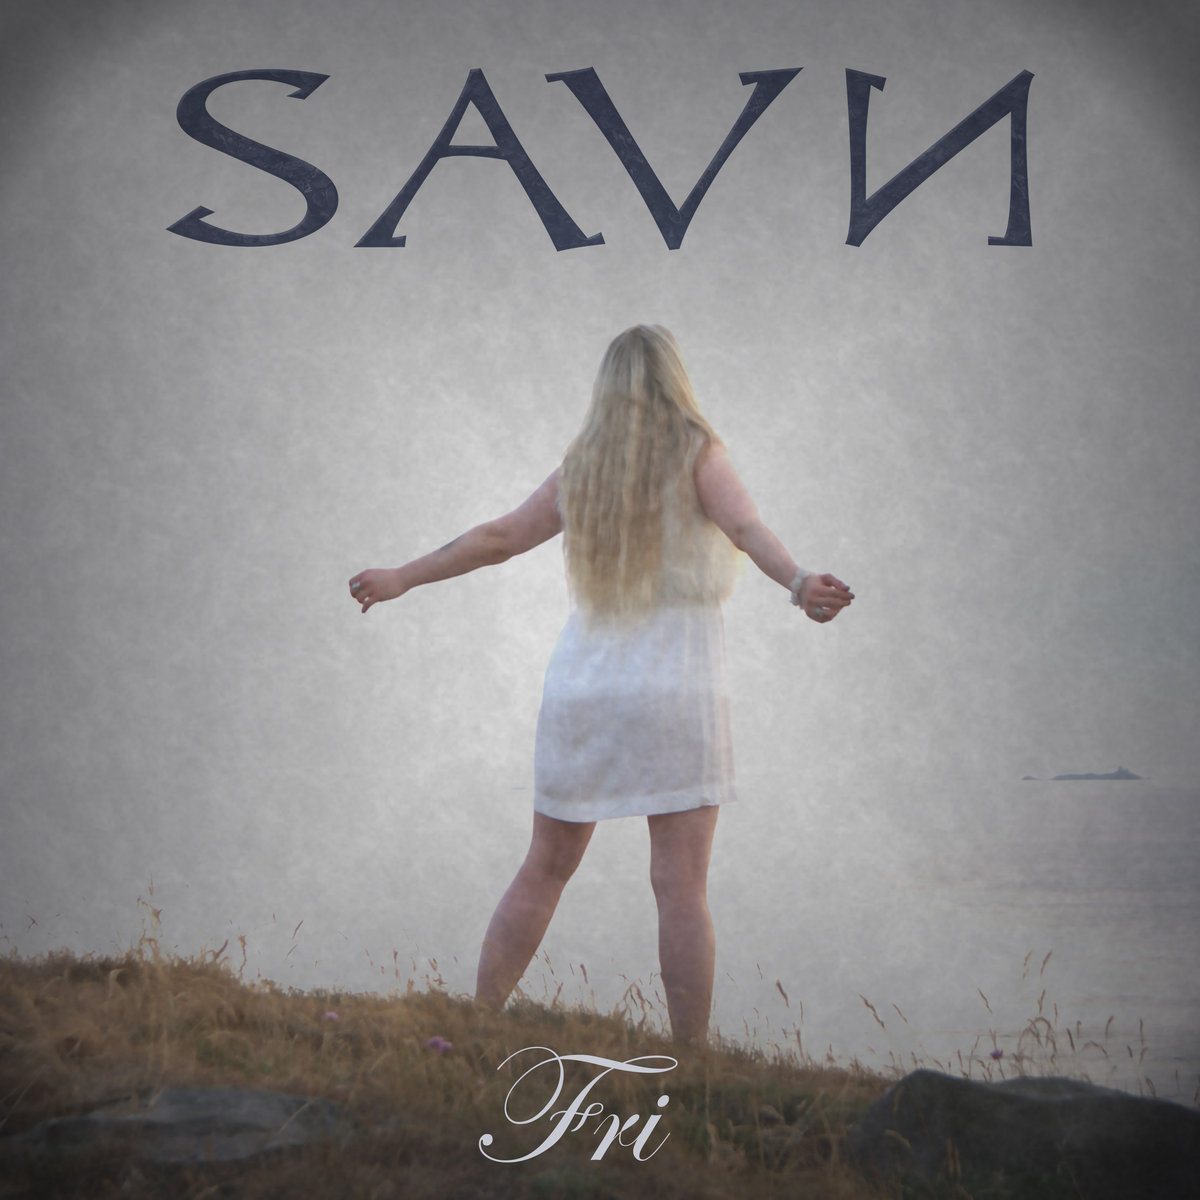 Fri by Savn